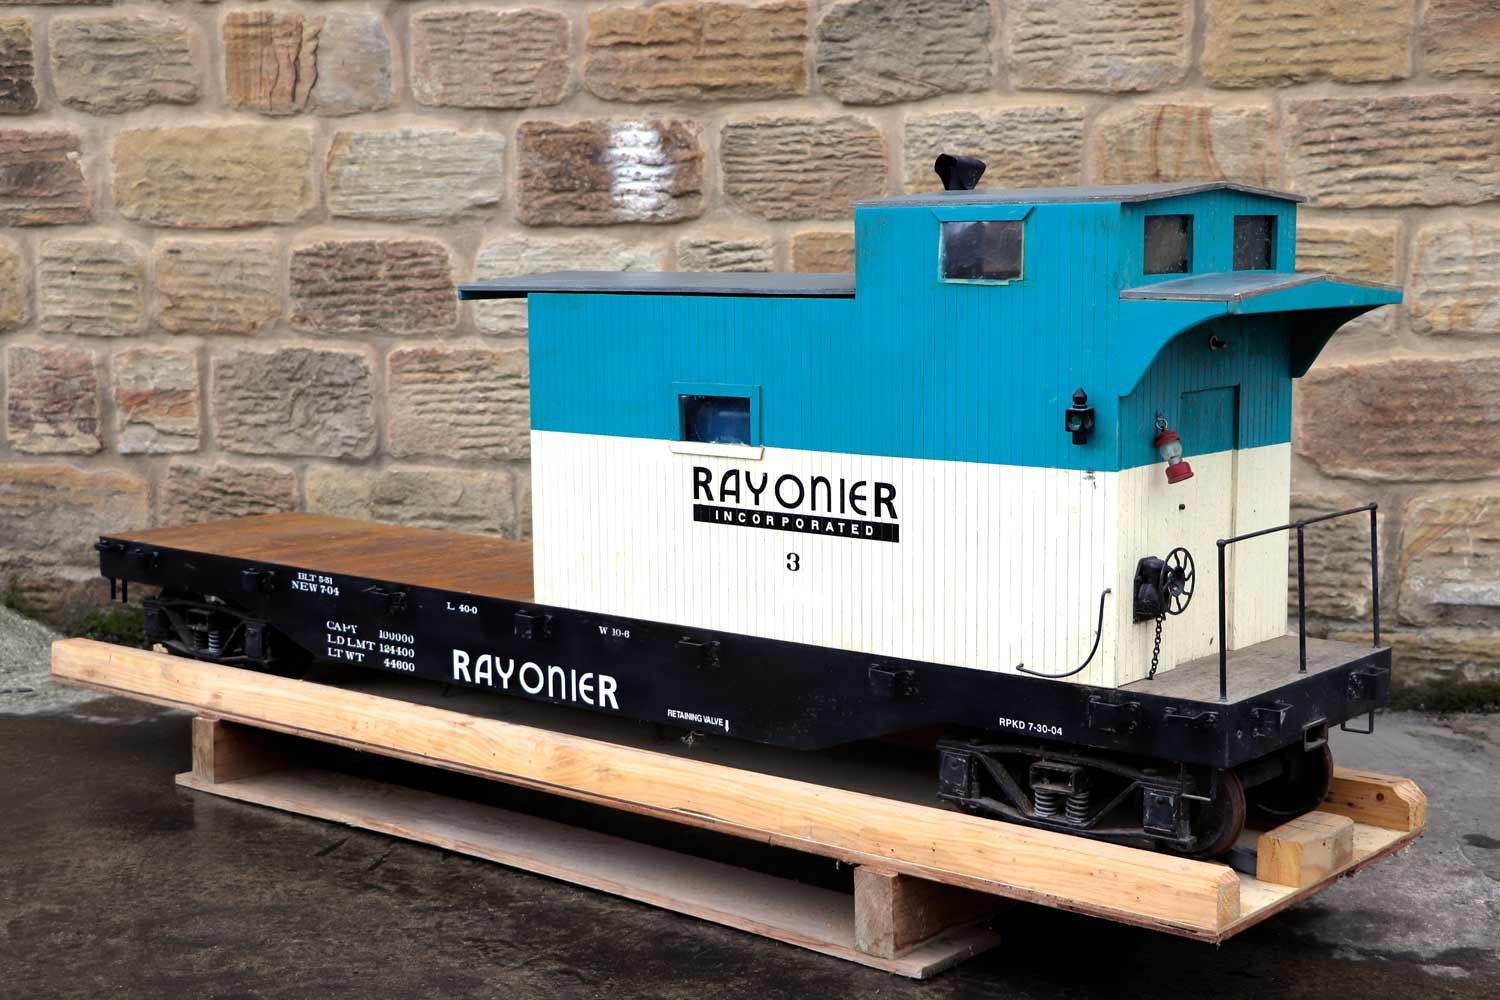 test 7-and-a-quarter-inch-rayonier-hc-railroad-carriage-live-steam-for-sale-03